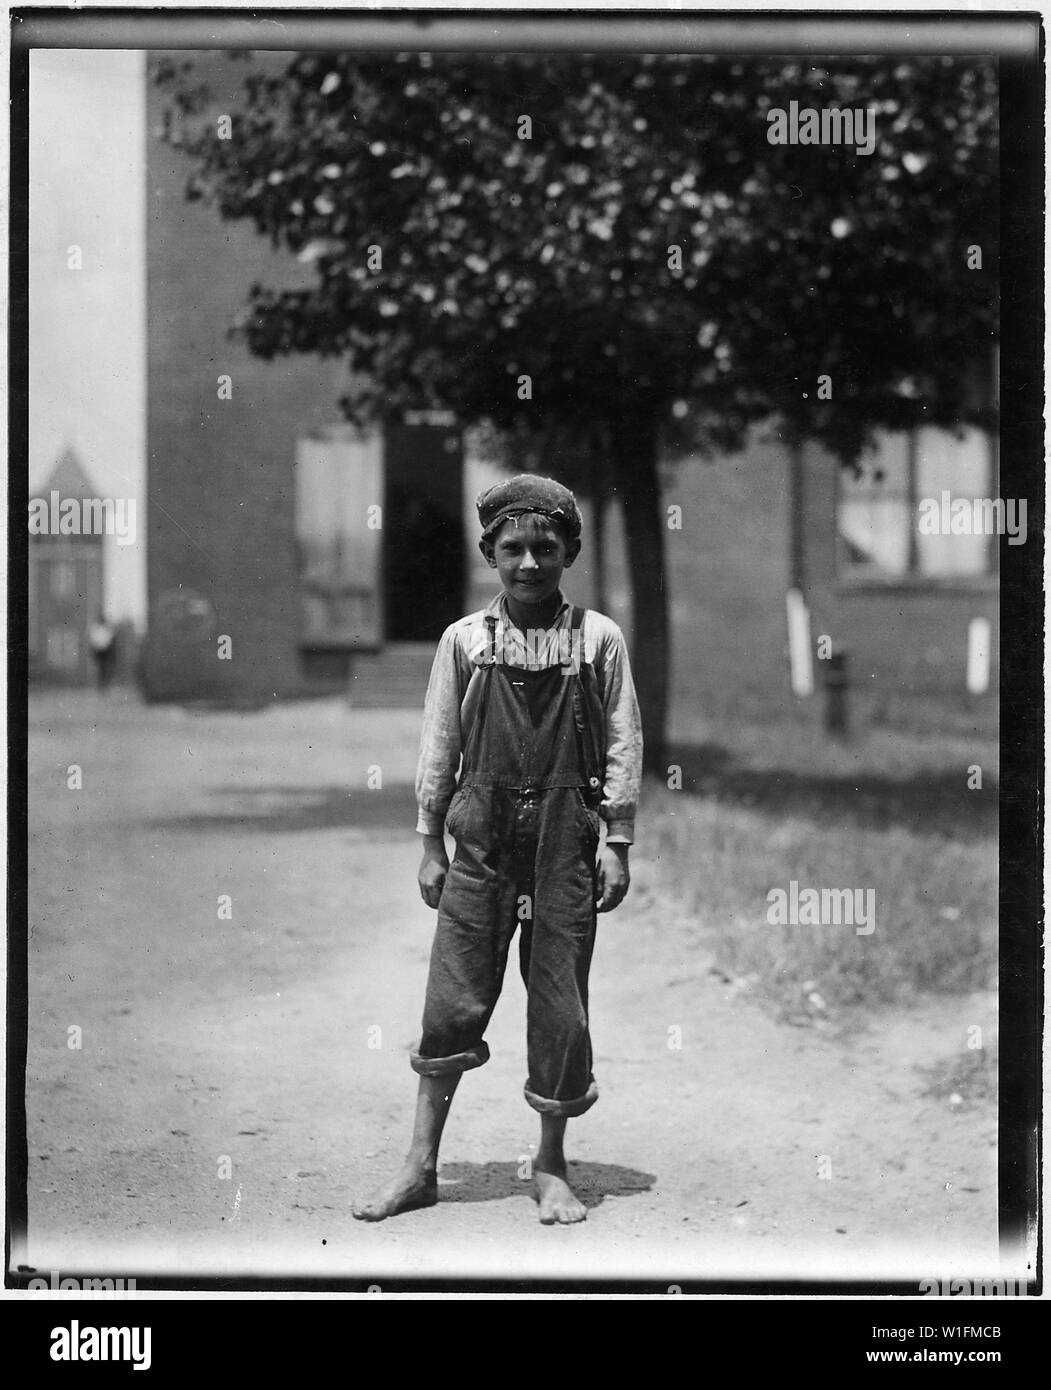 Johnnie Beam, one of the young workers in the Pelzer Mfg. Co. Been working there over a year. Appears to be under 12 years old. Pelzer, S.C. - Stock Image